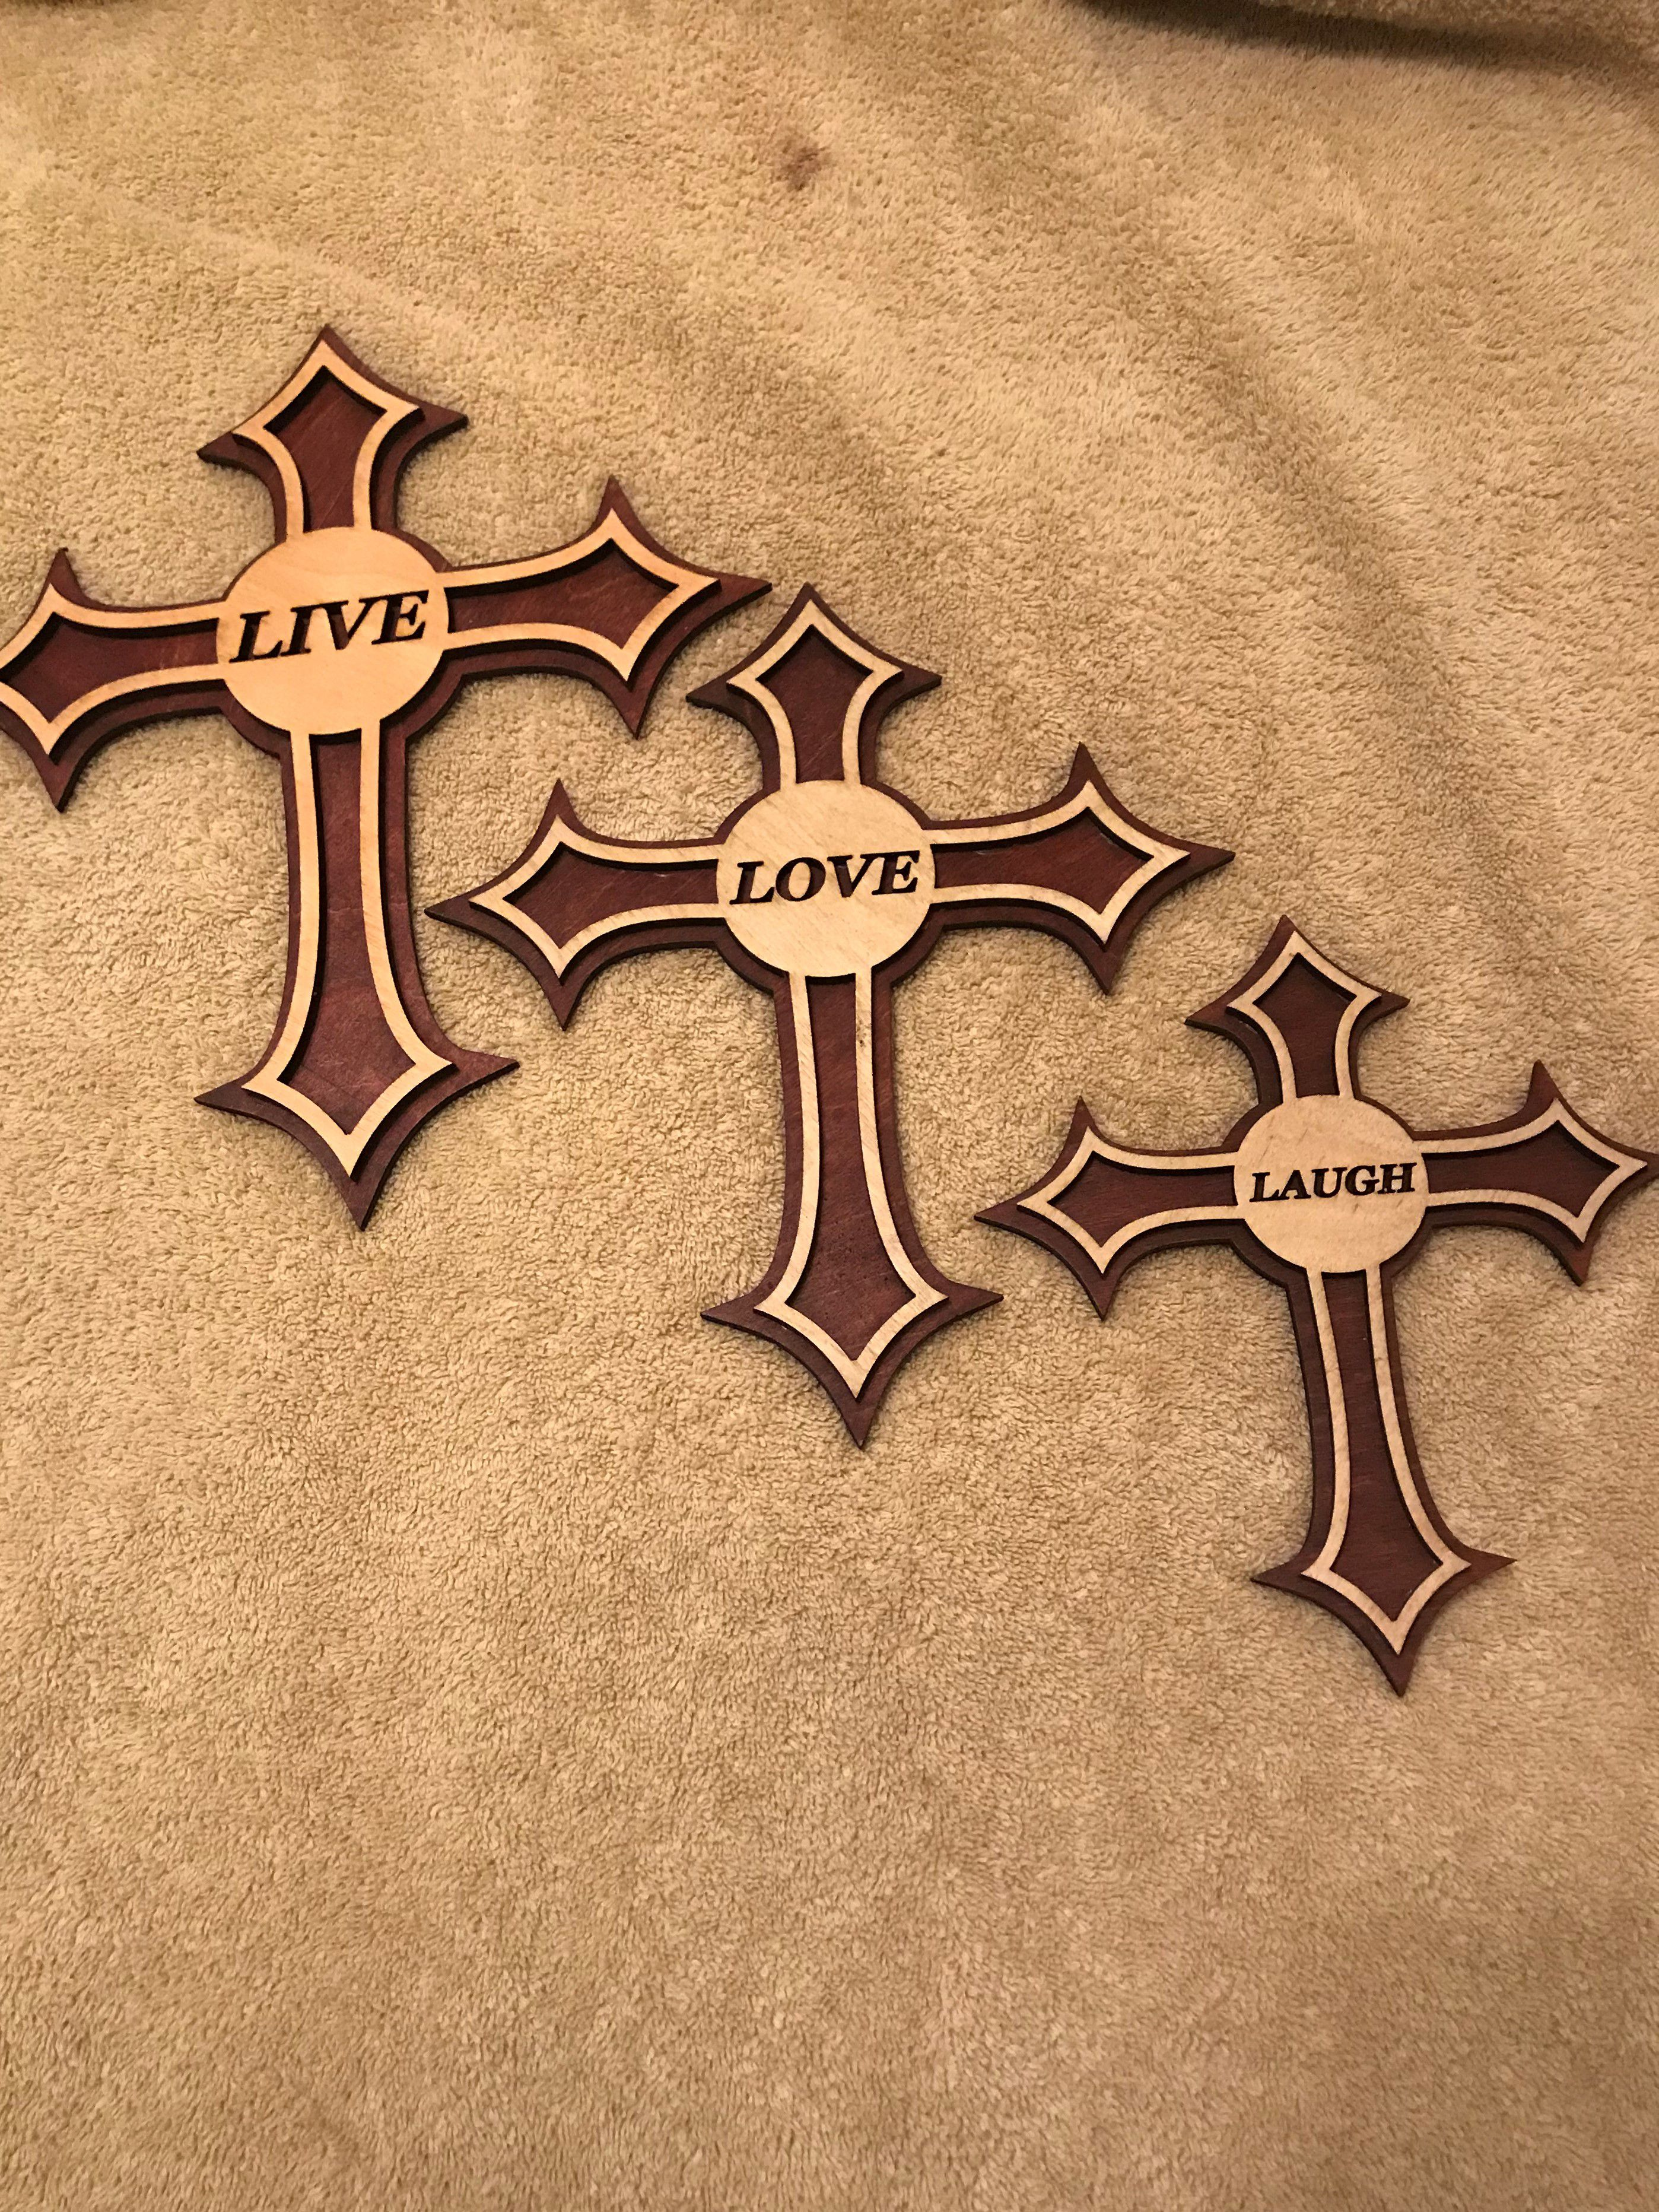 toned two live engraved laser set cross cut laugh love